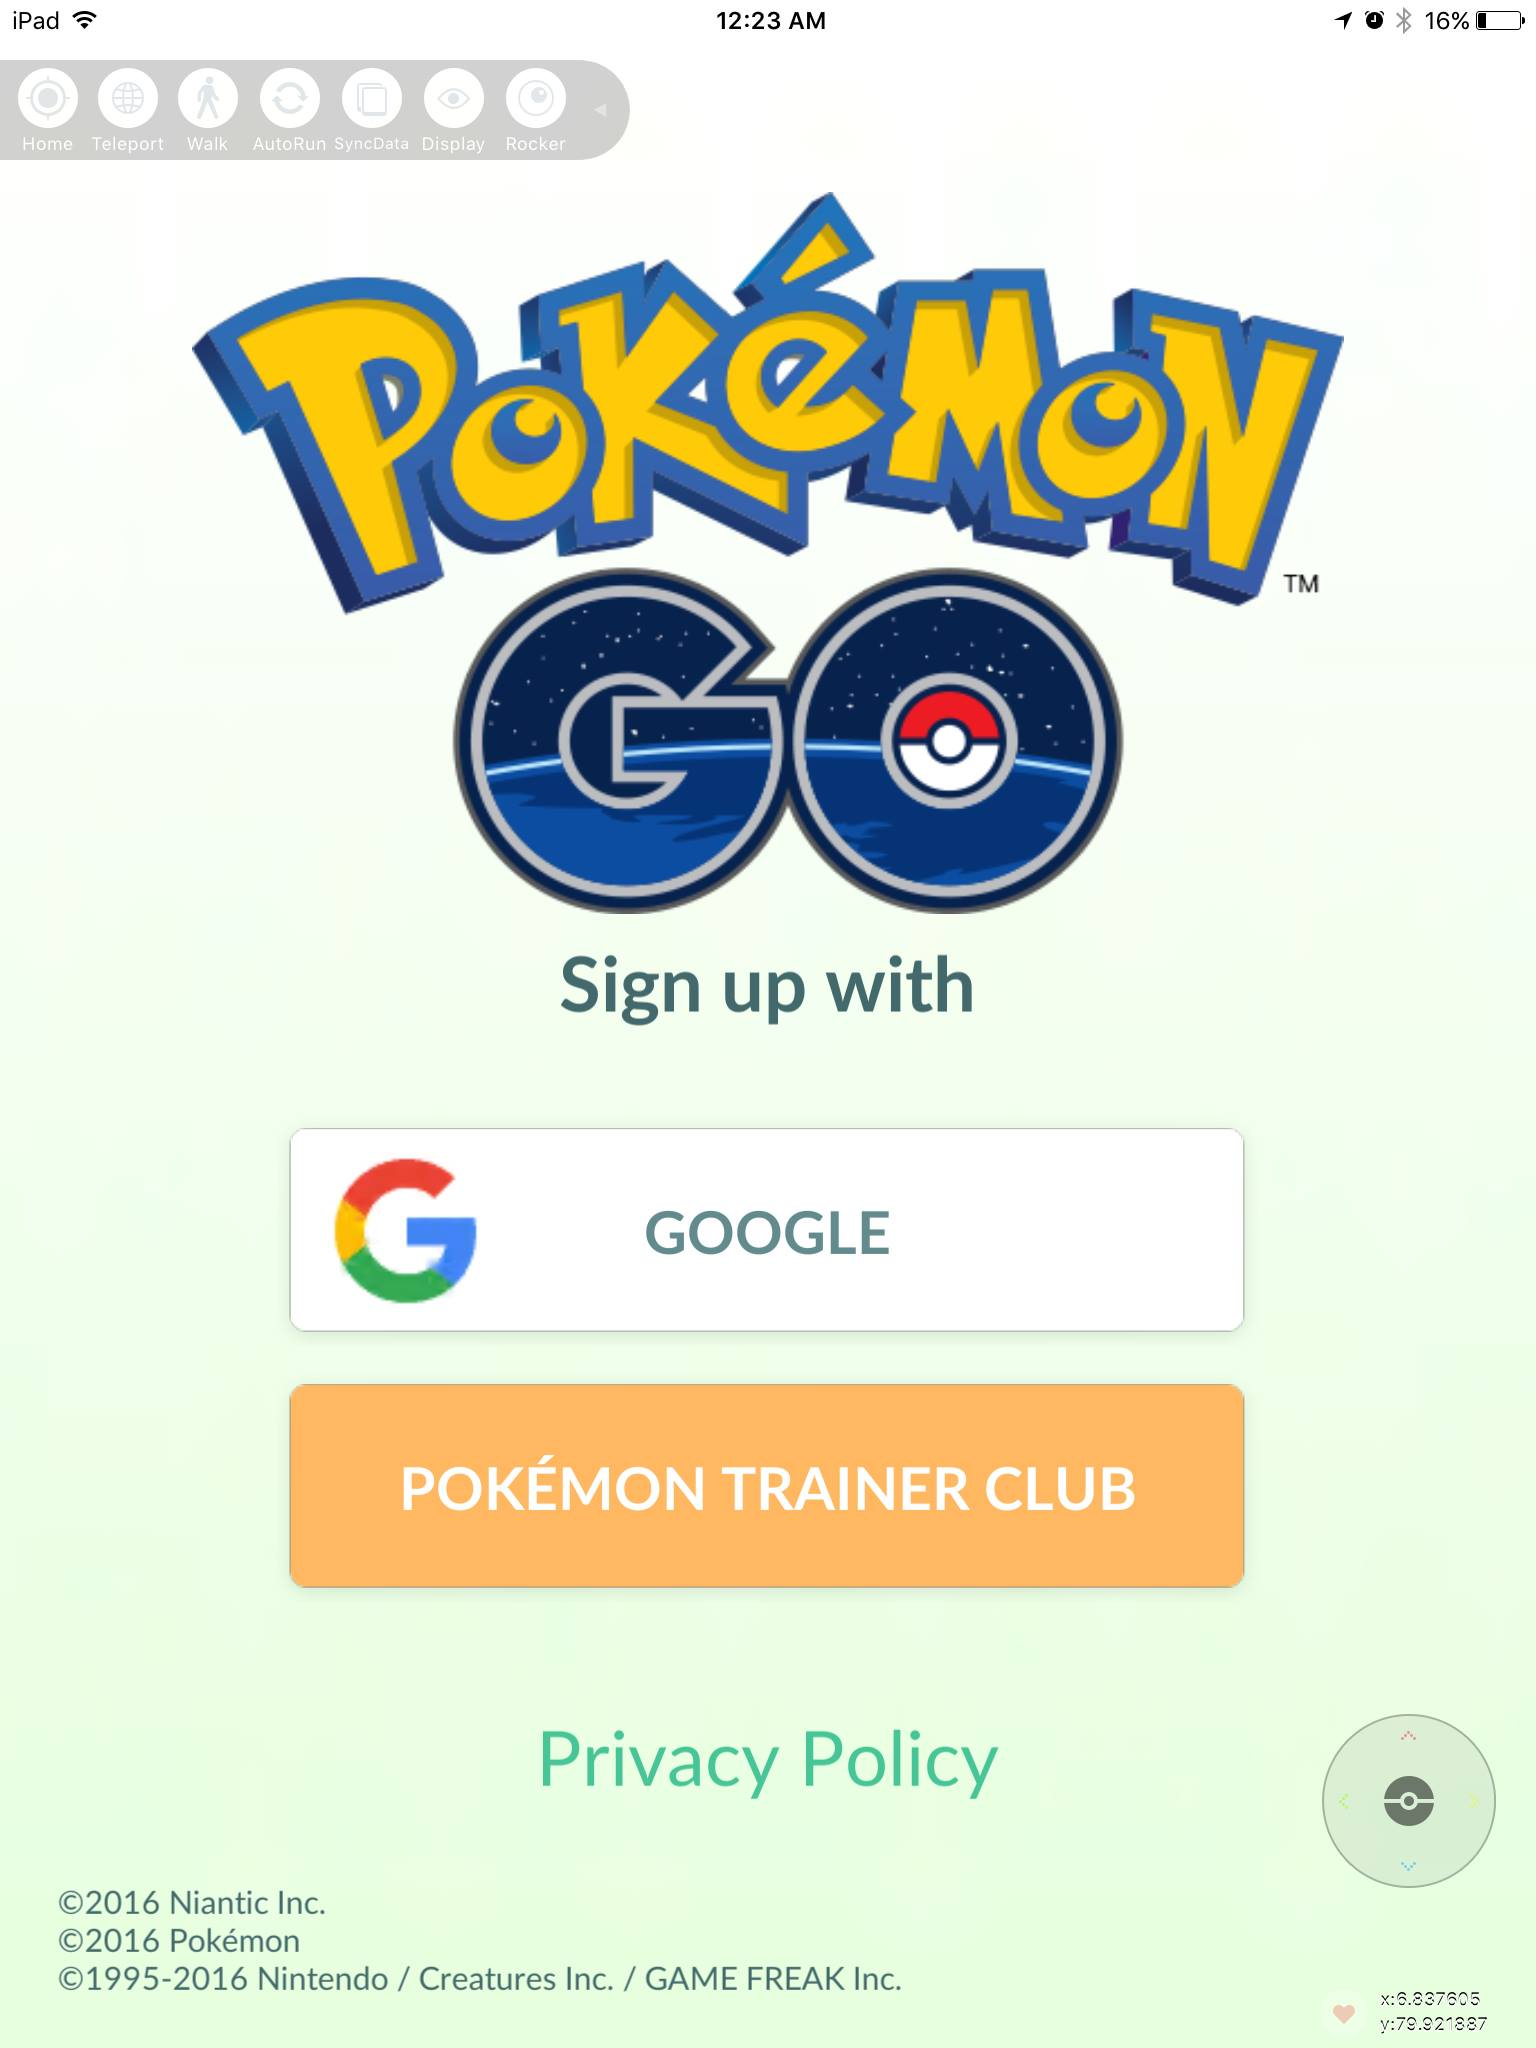 PokemonGo account